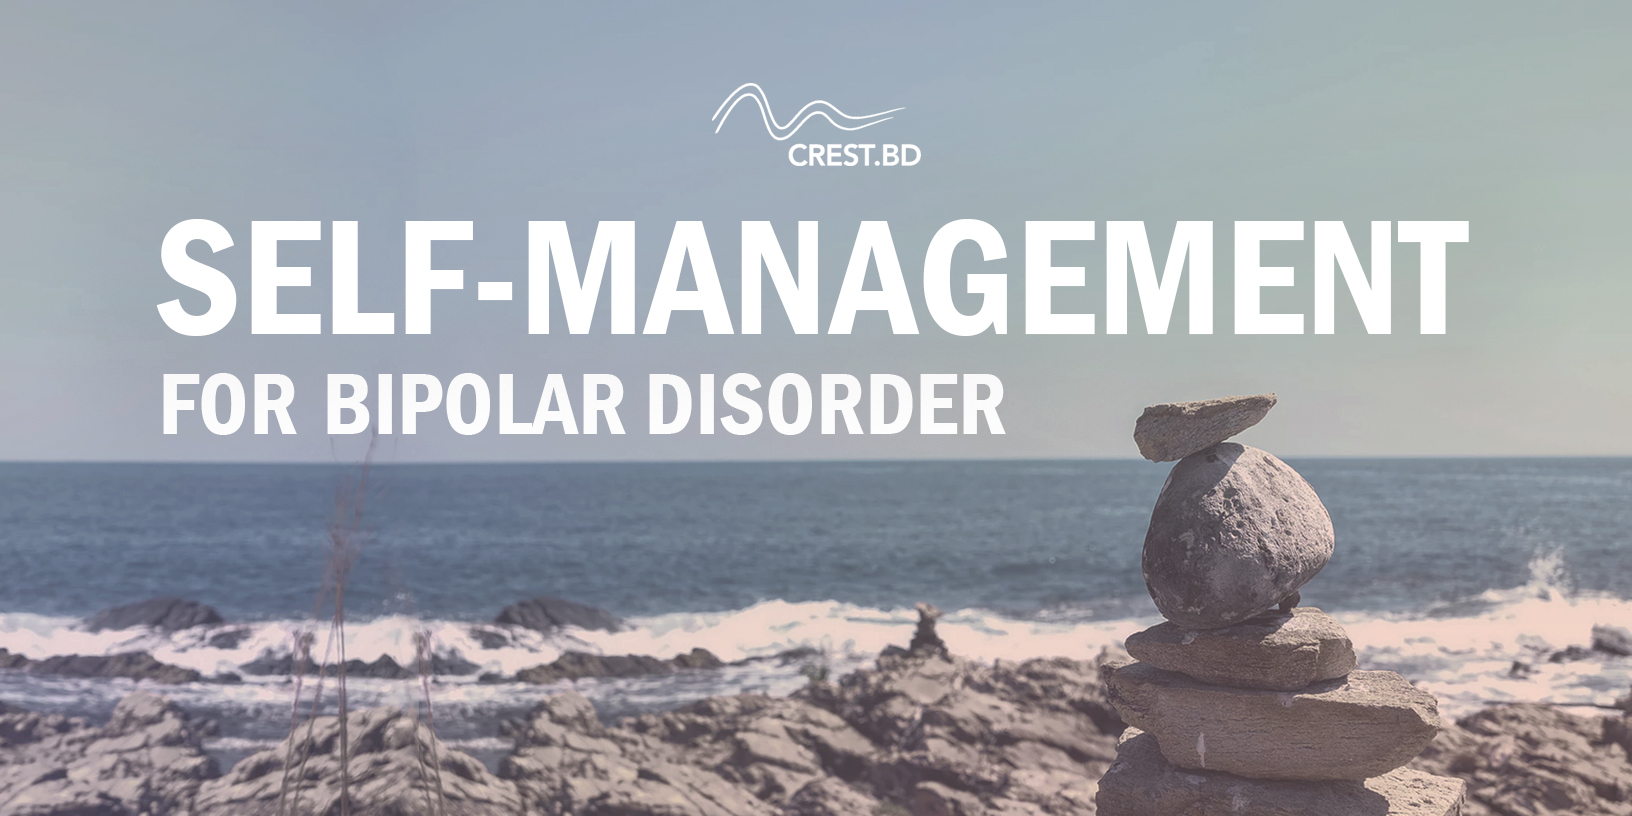 Self-Management: An Important Part of Treatment for Bipolar Disorder